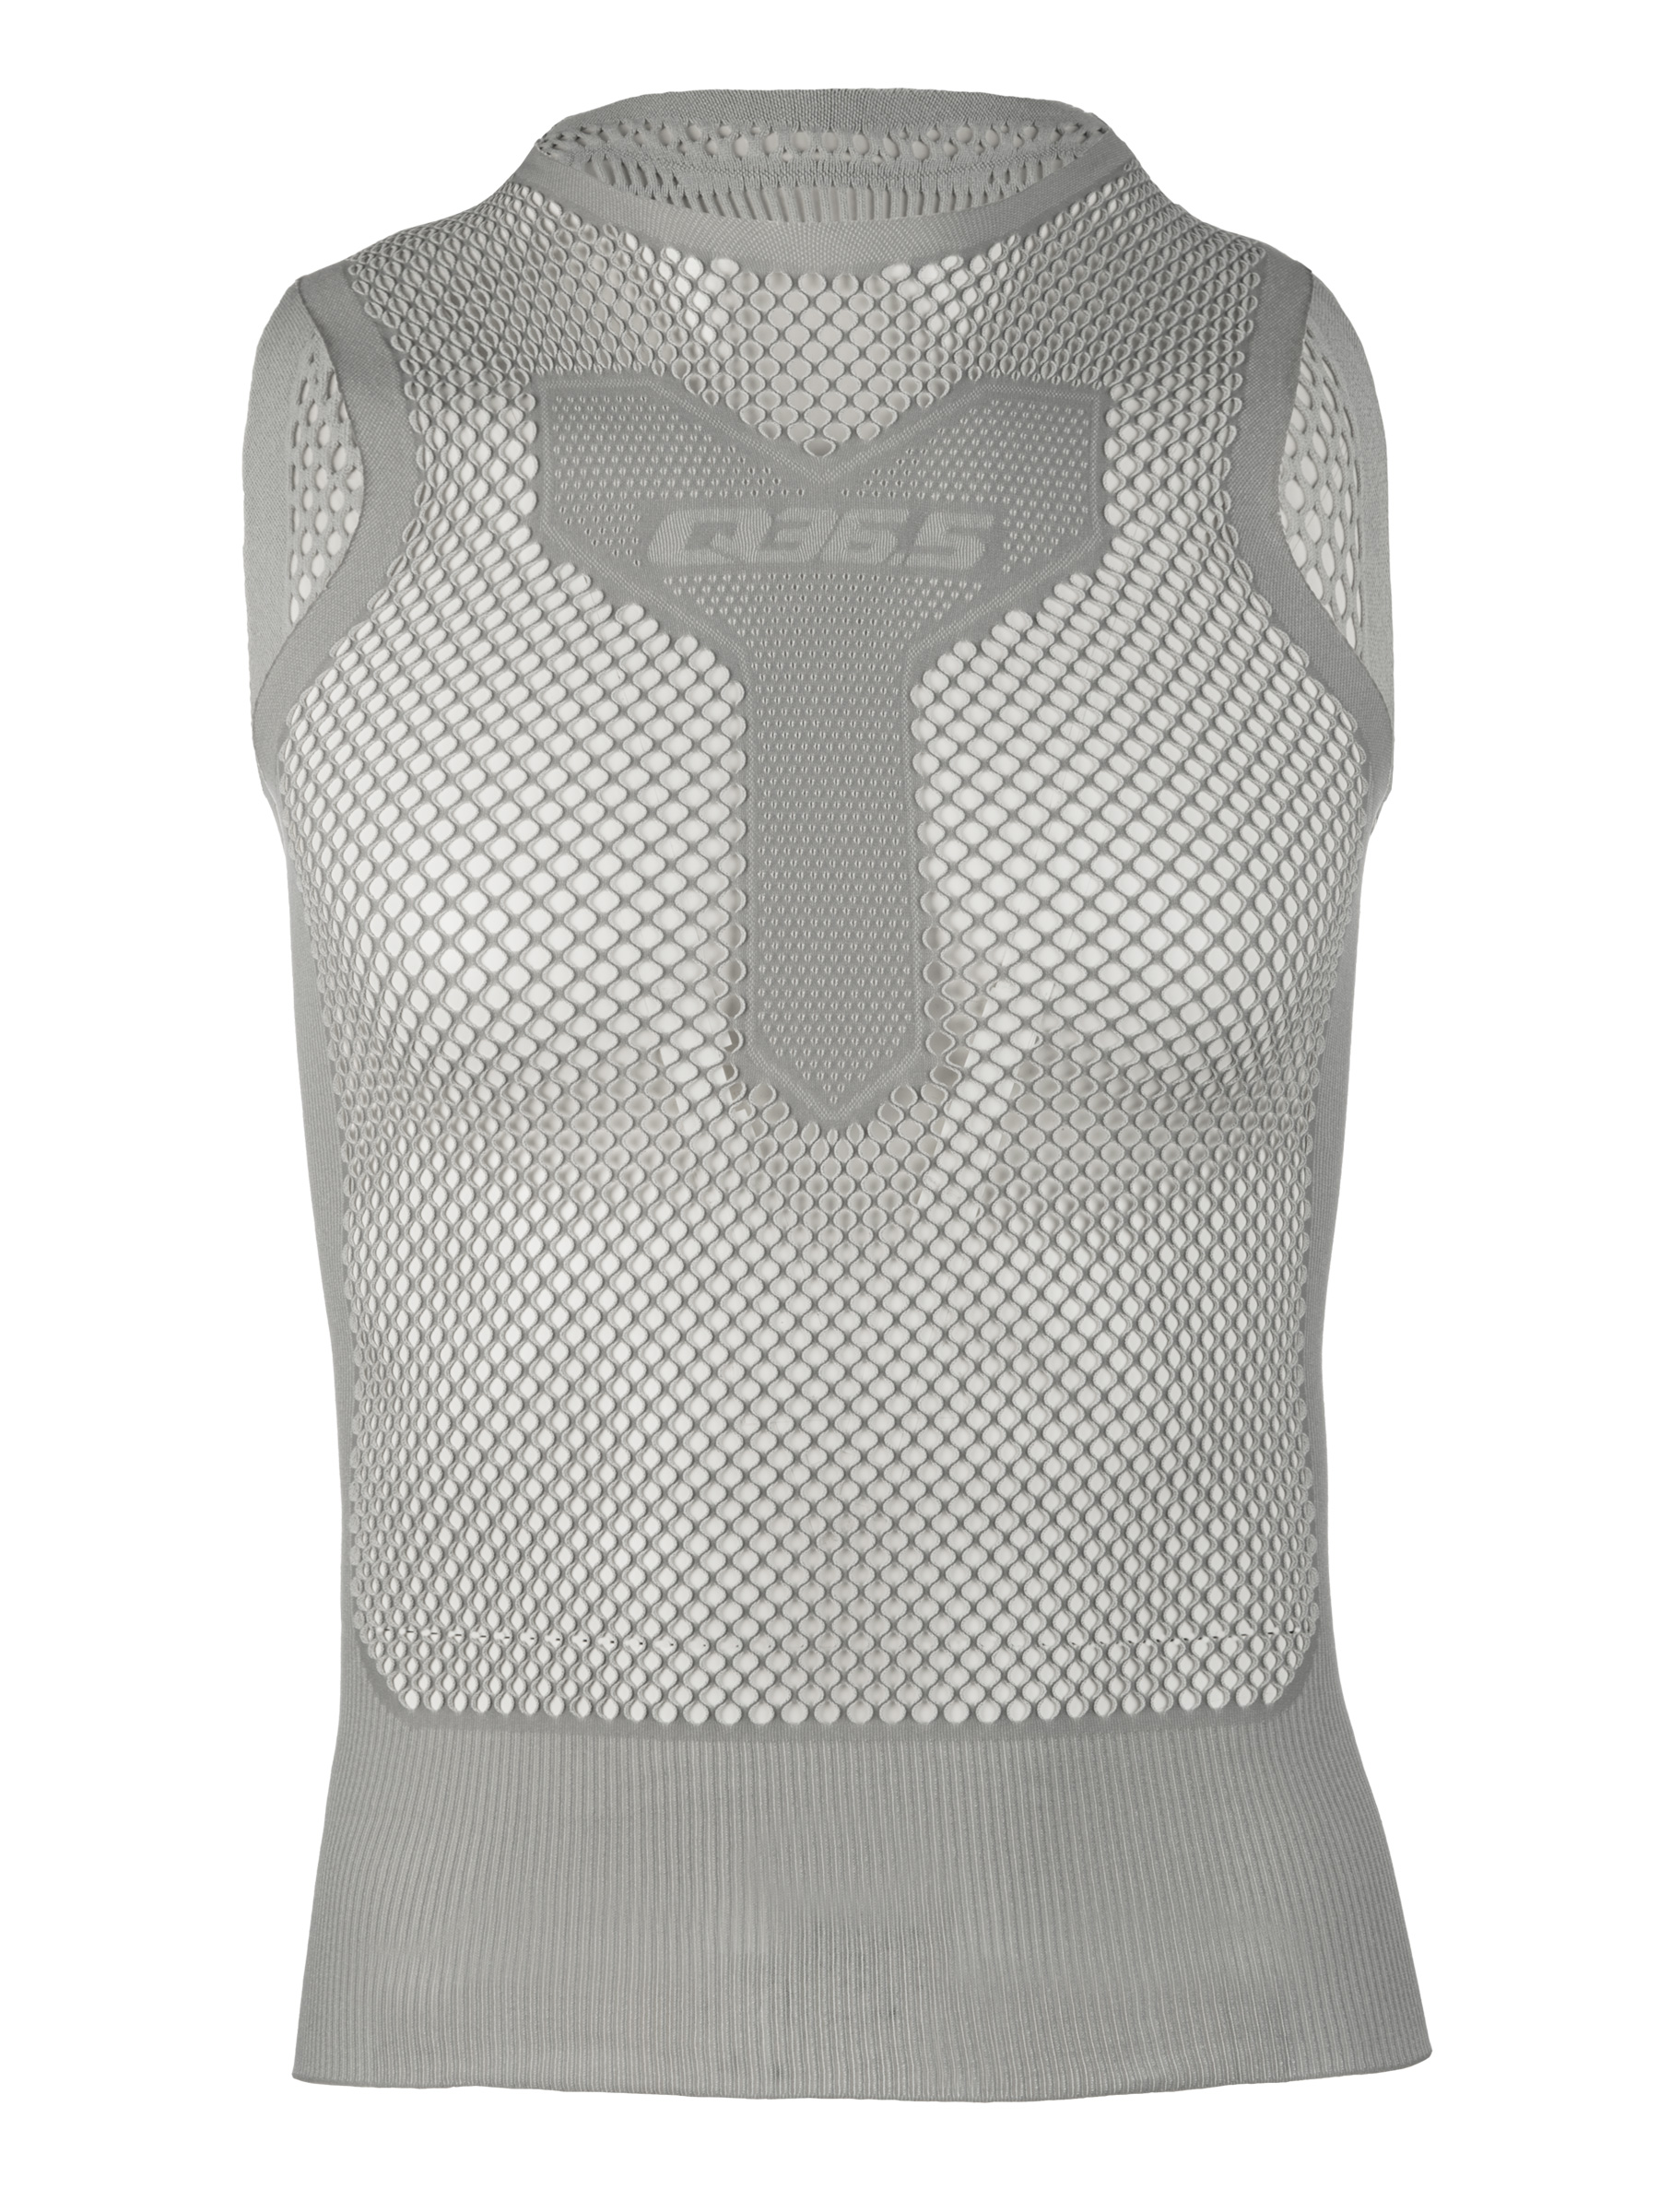 cycling base layer mesh Q36.5